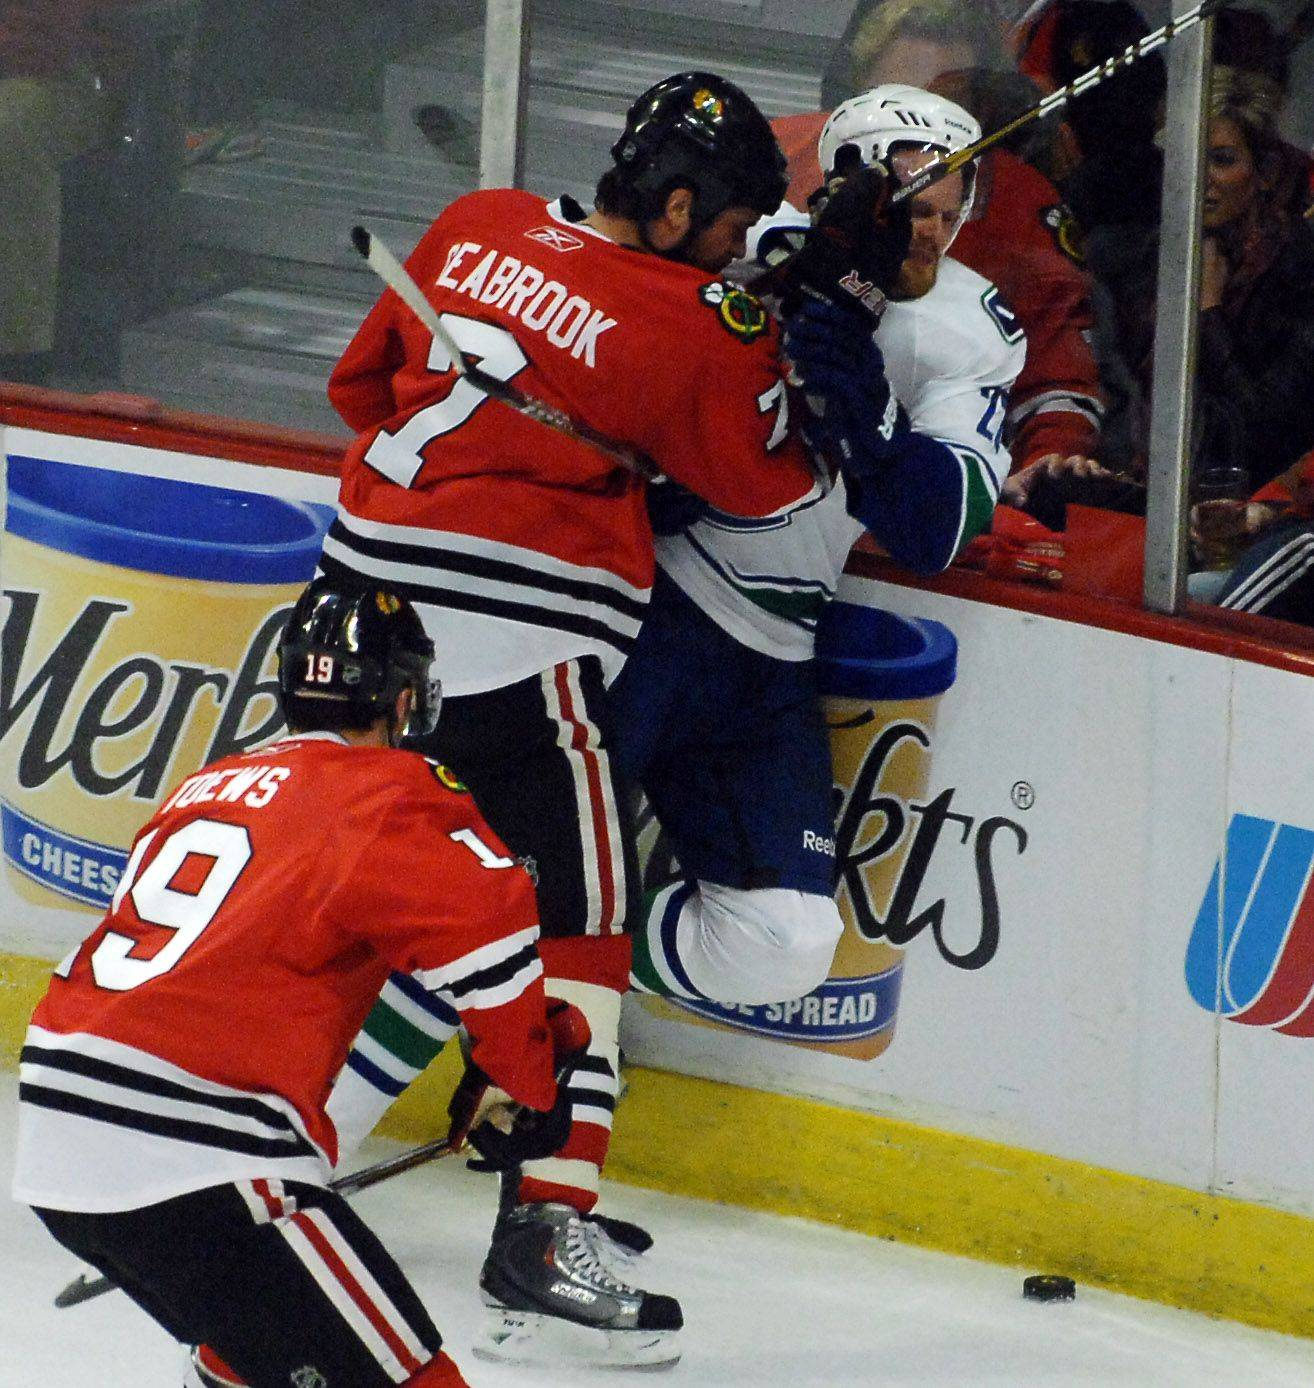 Chicago Blackhawks defenseman Brent Seabrook checks Vancouver Canucks left wing Daniel Sedin.